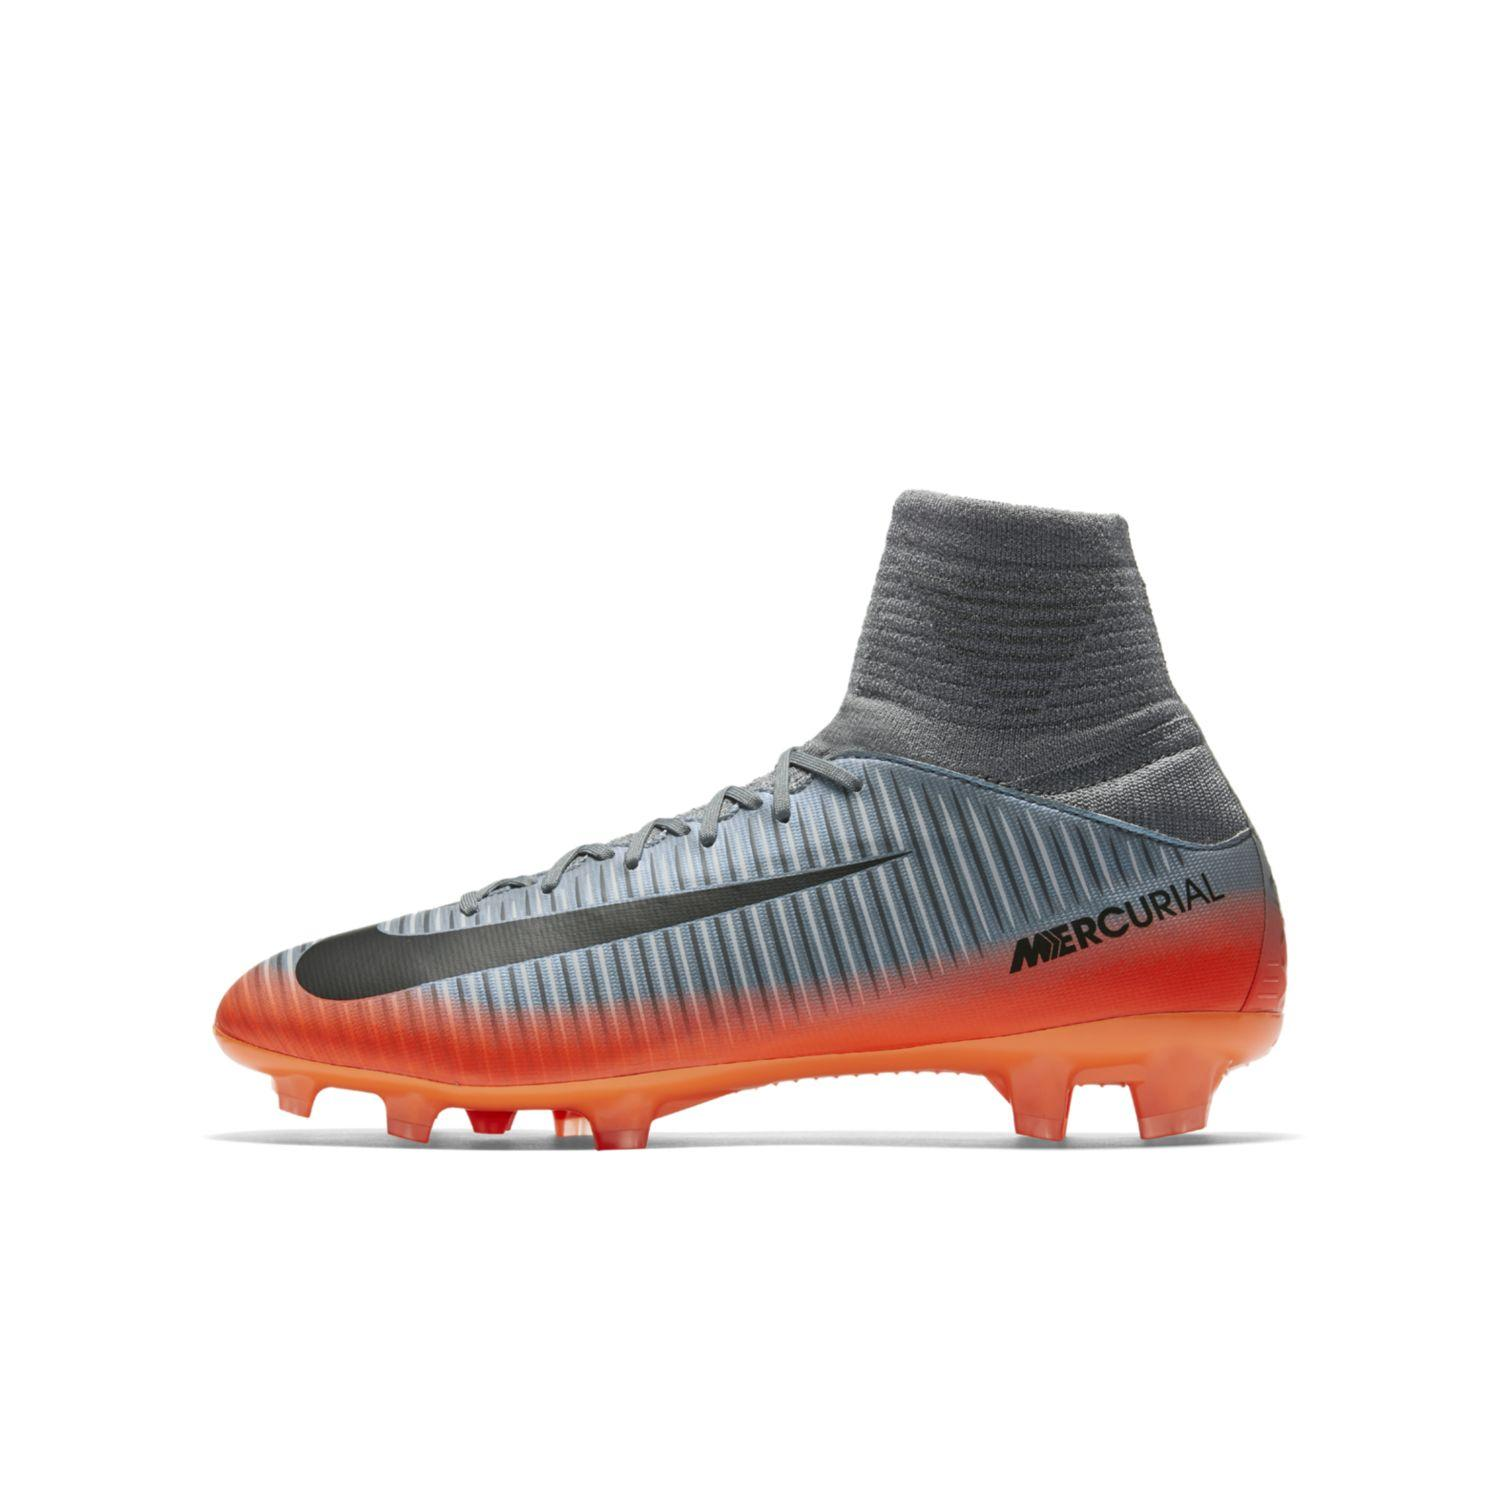 Nike Chaussures de football MERCURIAL SUPERFLY V CR7 FG Enfant Cristiano Ronaldo